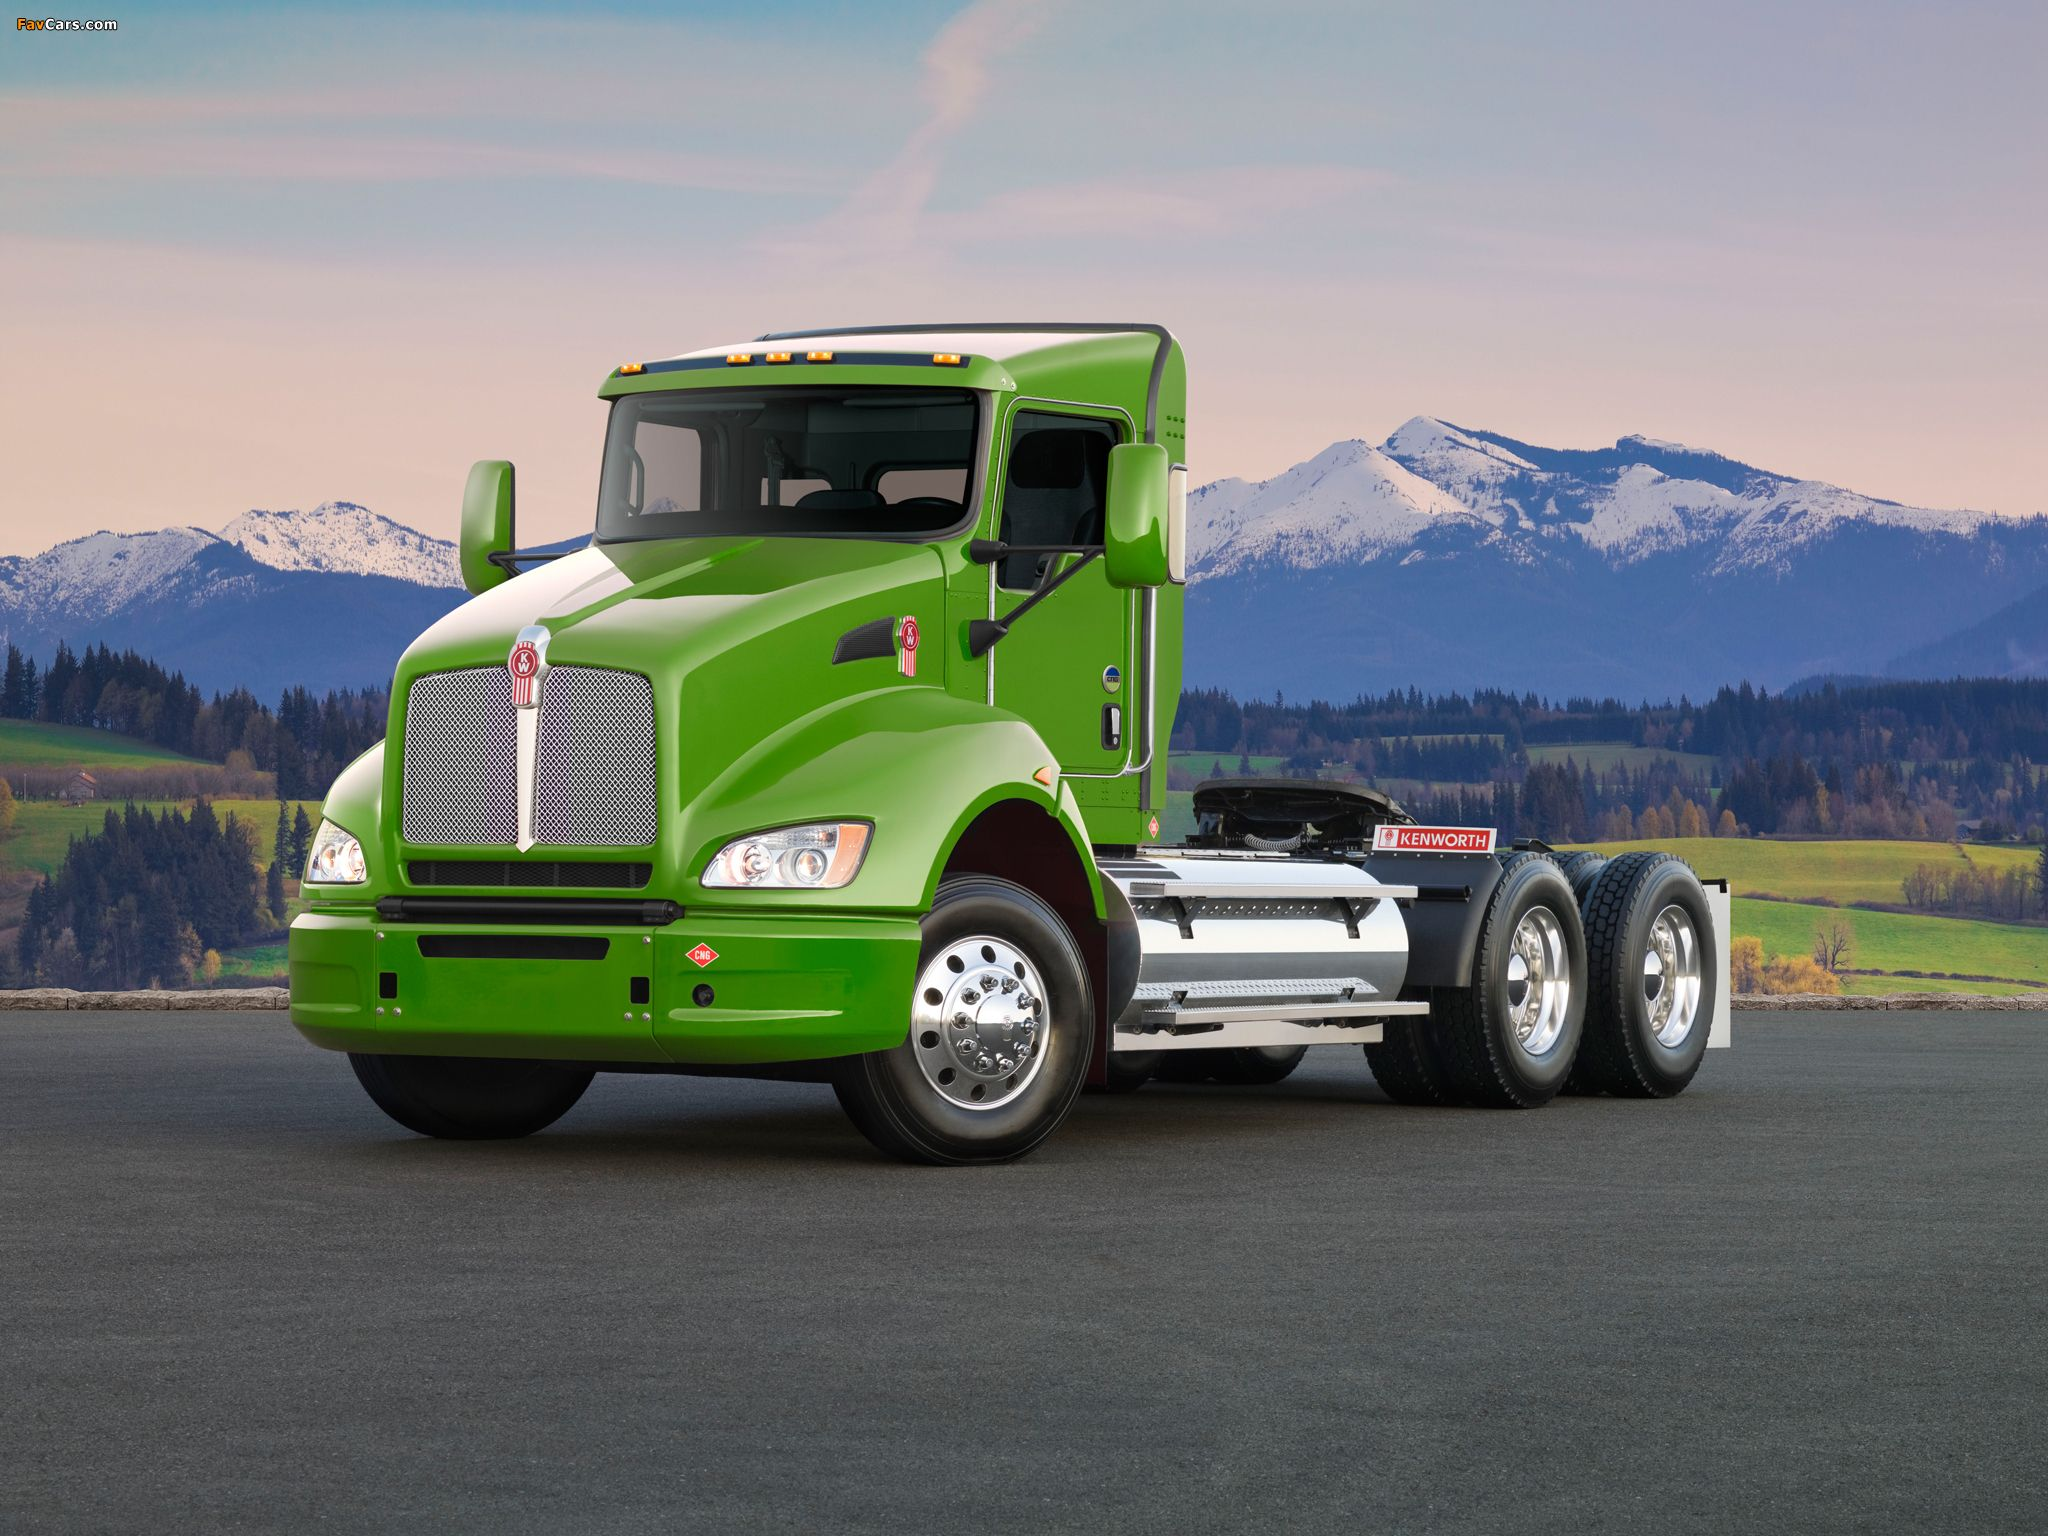 Kenworth 2009 images free pictures of kenworth 2009 for your desktop hd wallpaper for backgrounds kenworth 2009 car tuning kenworth 2009 and concept car